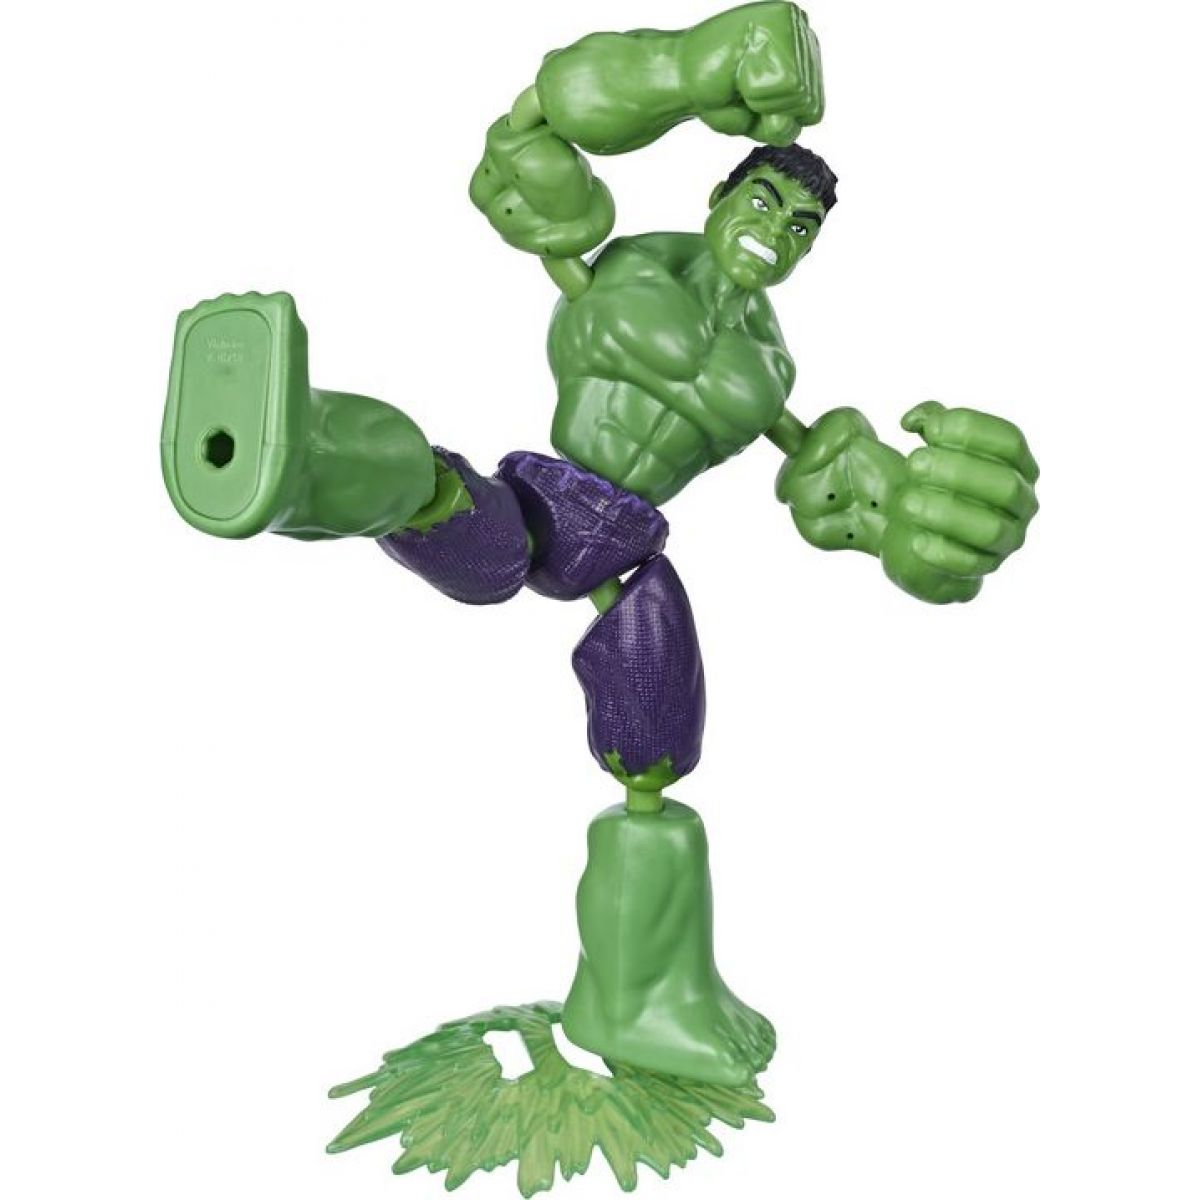 Hasbro Avengers figurka Bend and Flex 15 cm Hulk